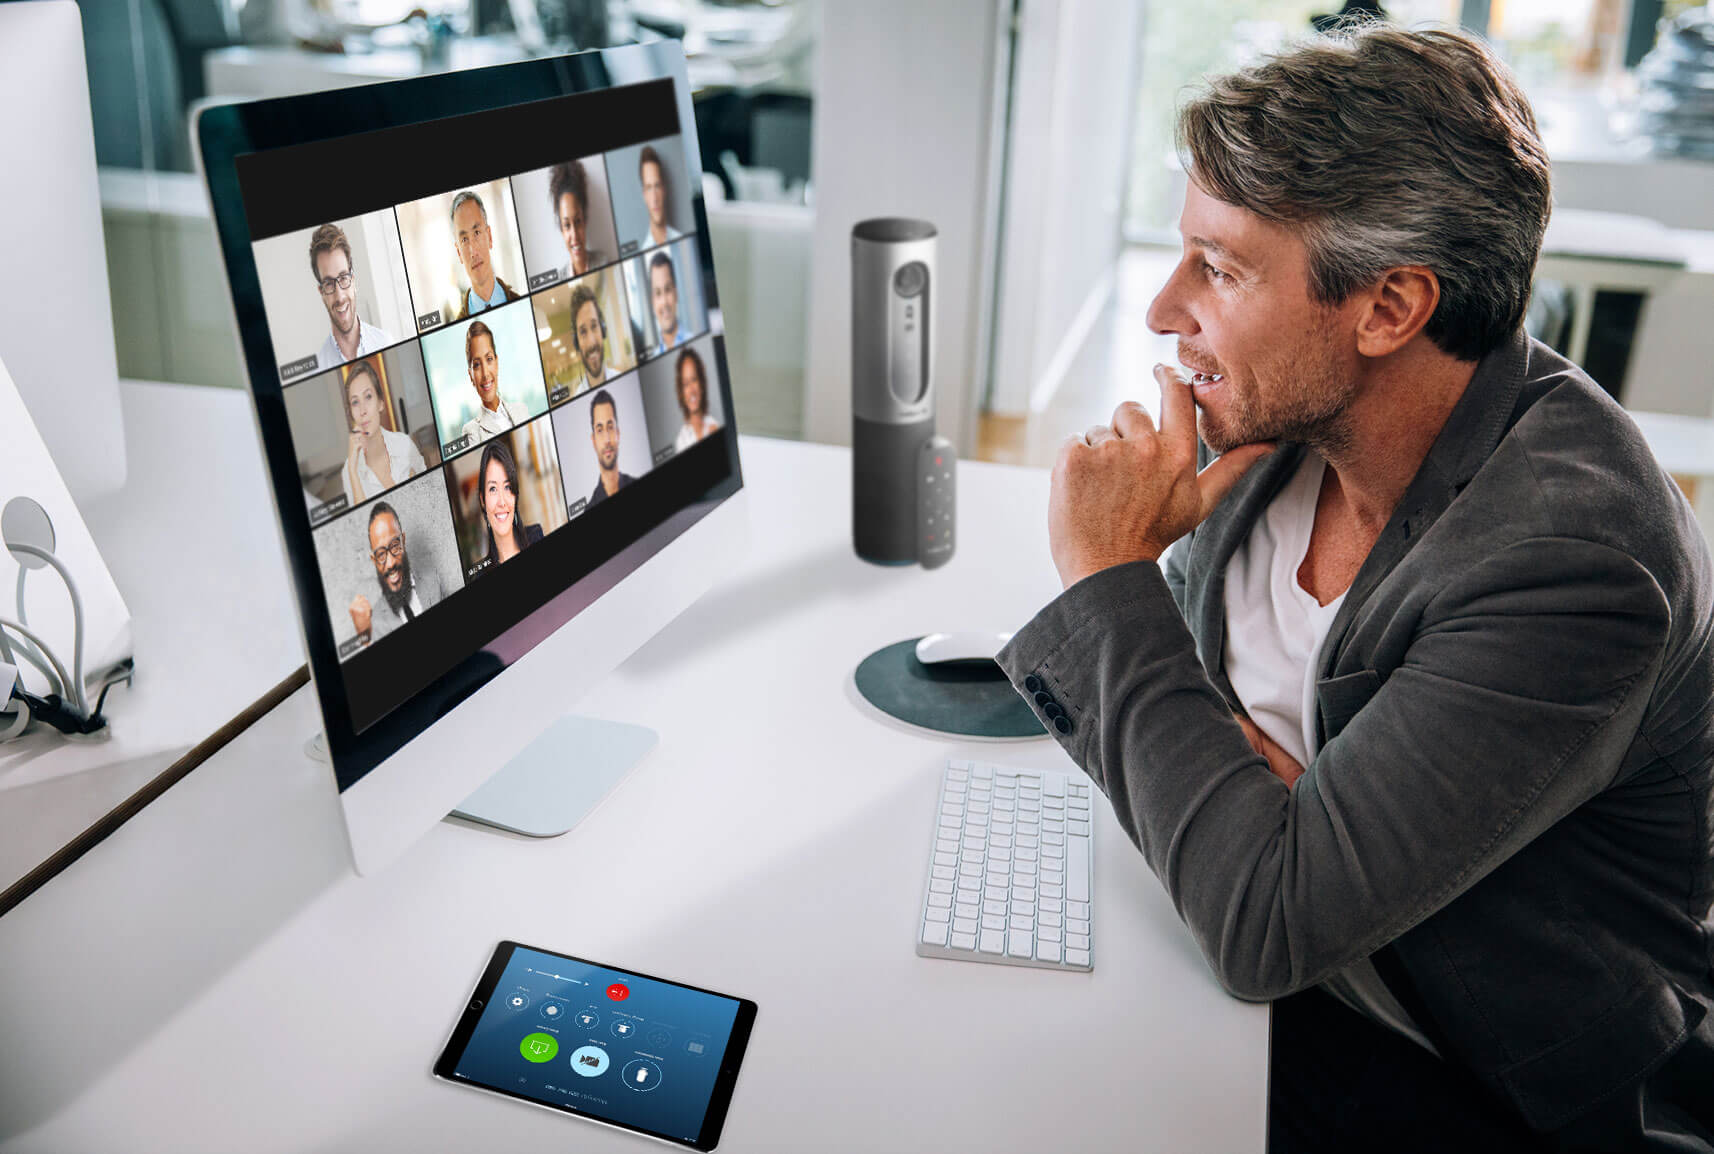 Using Zoom app to stay connected in self isolation